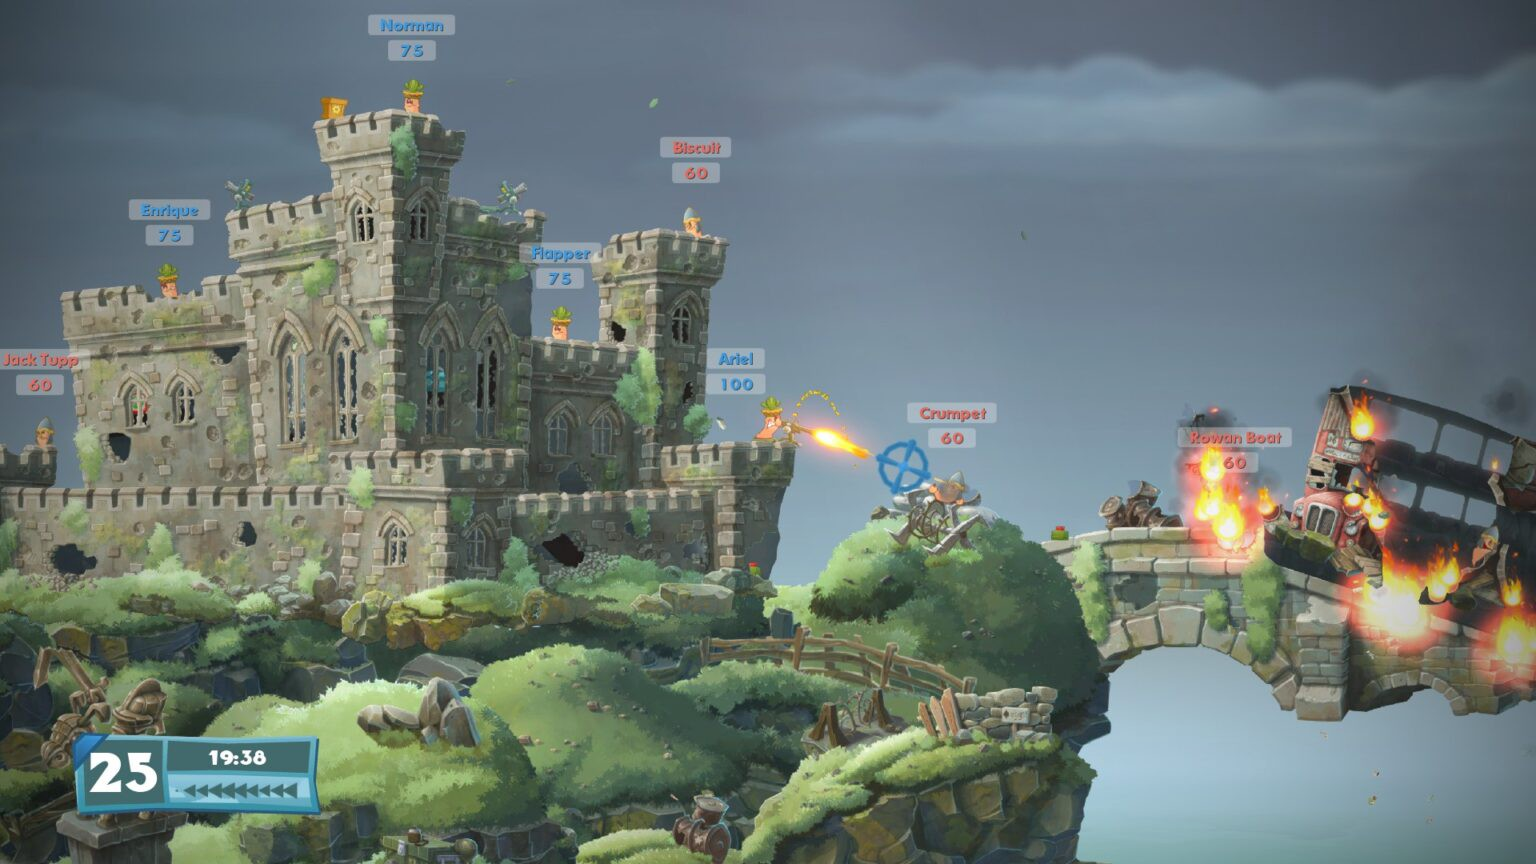 An in game screenshot of worms fighting on top of a castle.